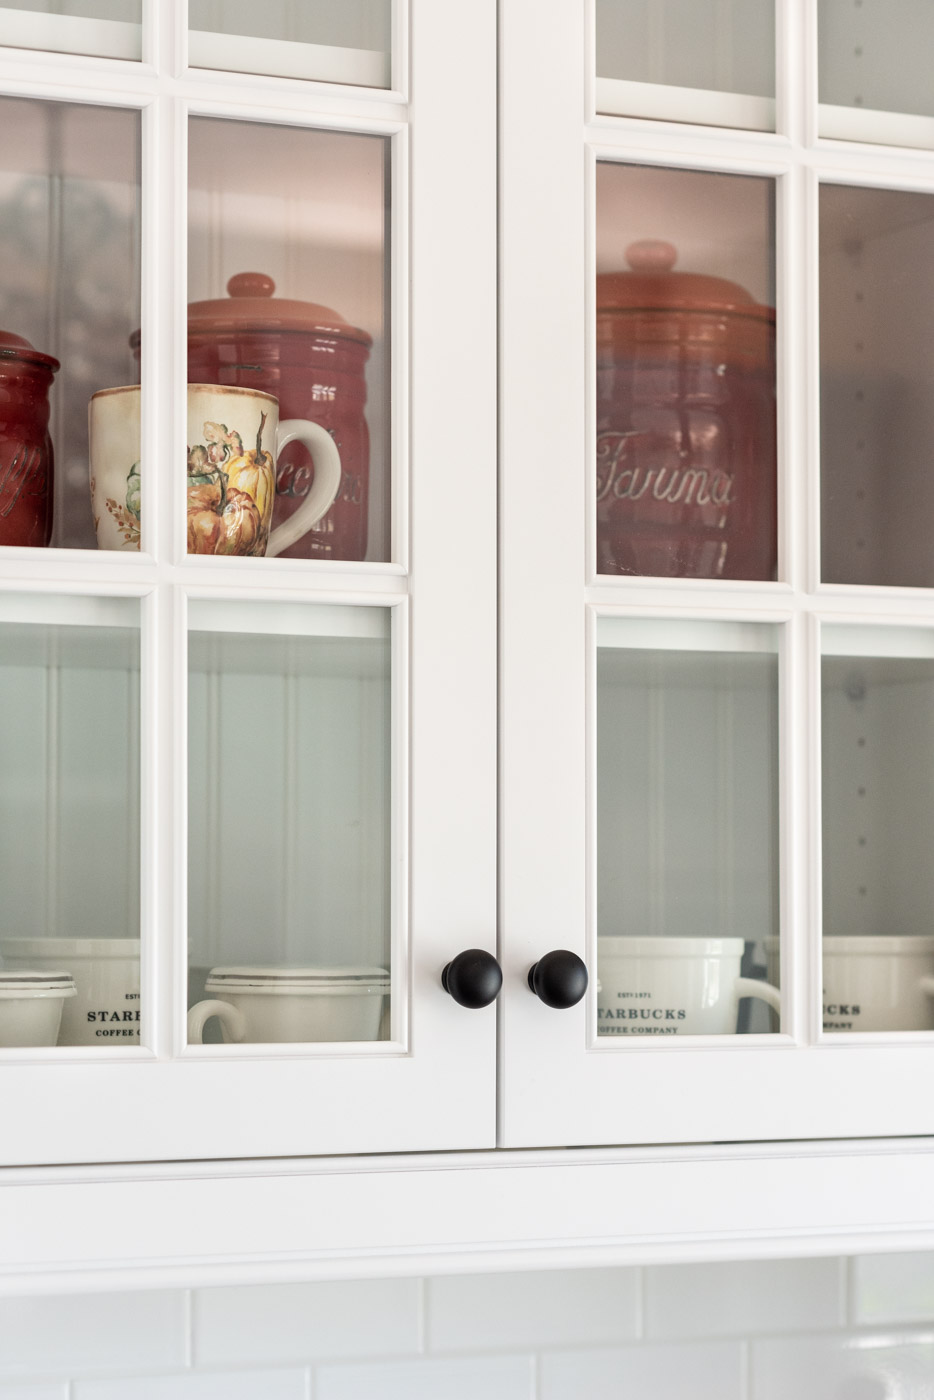 Transitional Country Cottage style kitchen with french door glass cabinet door panels